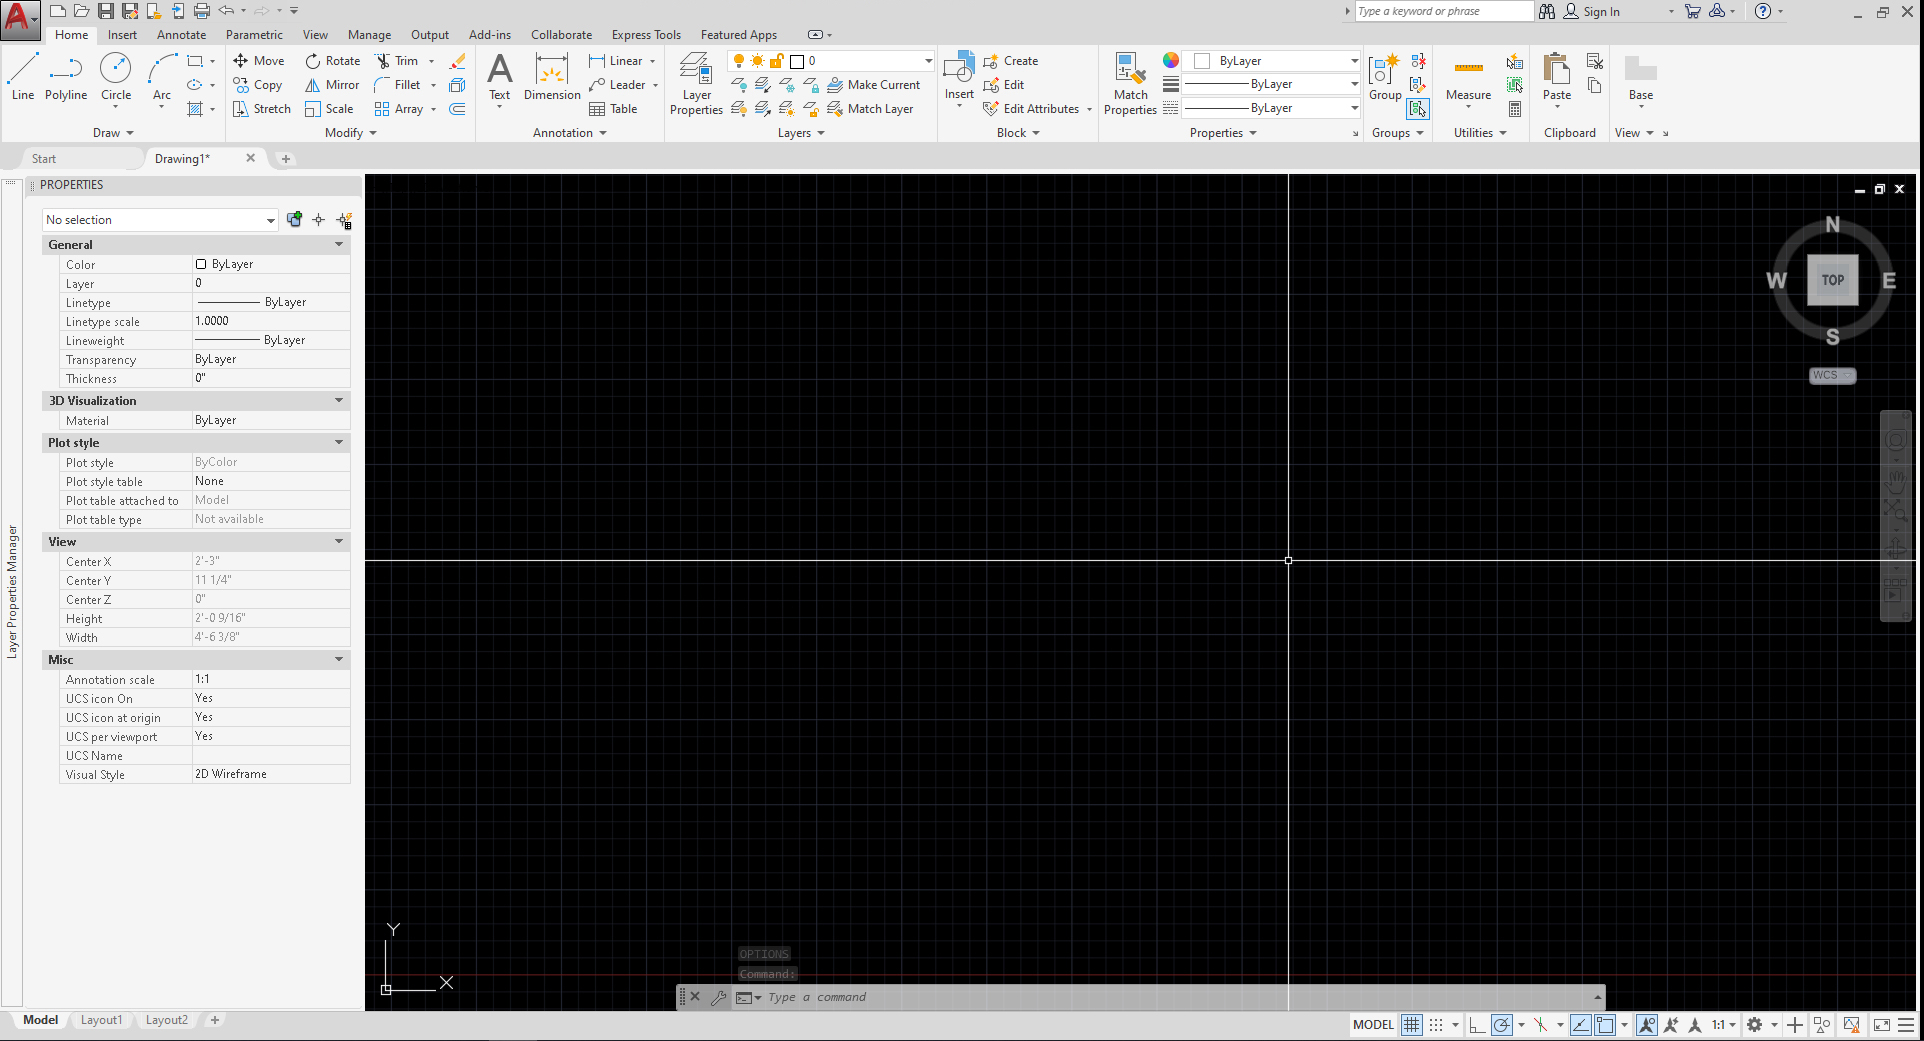 It shows the Interface after setting changes. The window color changed to white, the background changed to black color, the cross-hair extended to the end of the window.